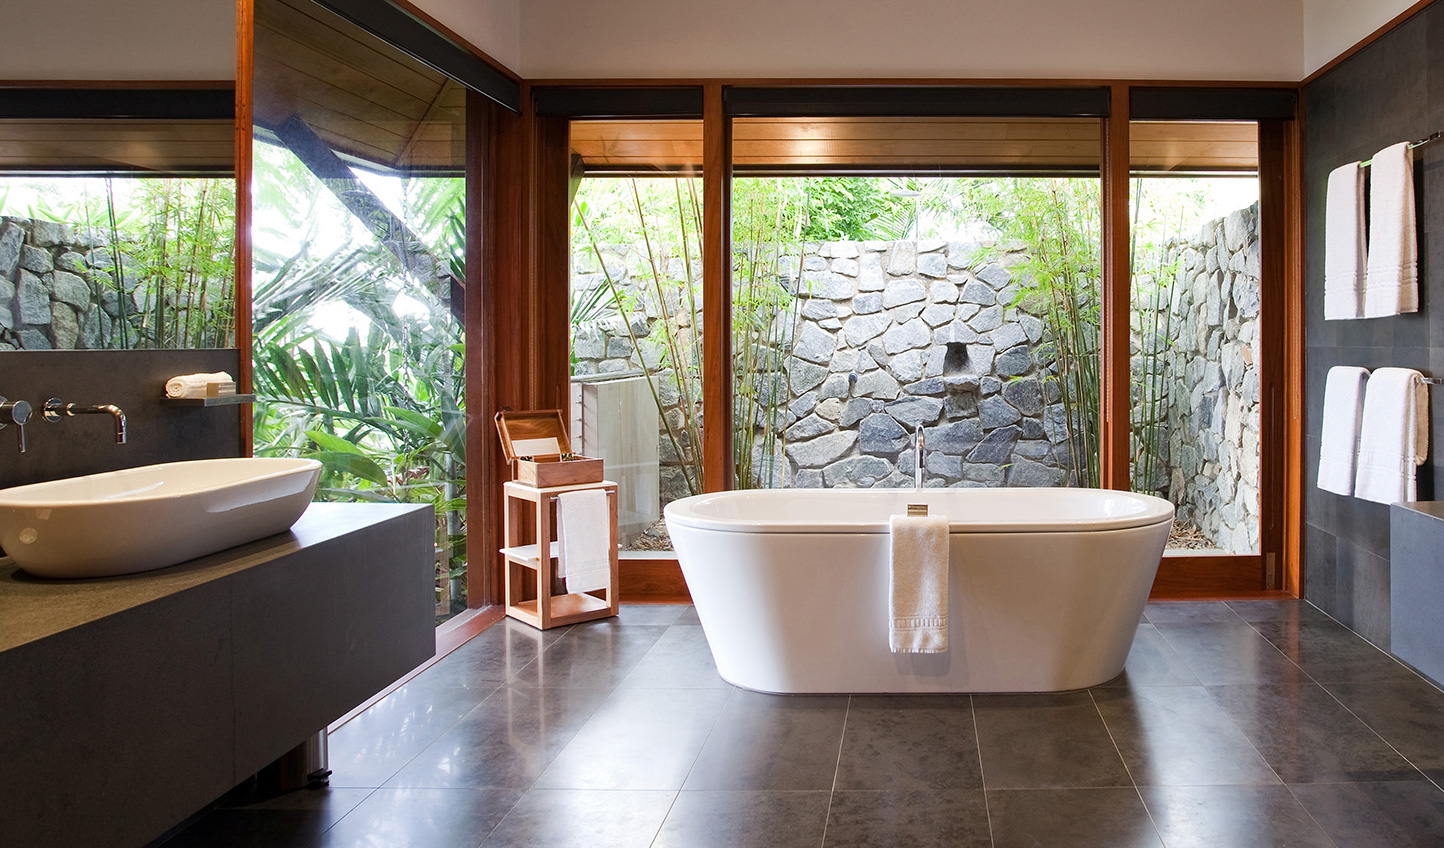 Sink into the tub and enjoy the tropical views